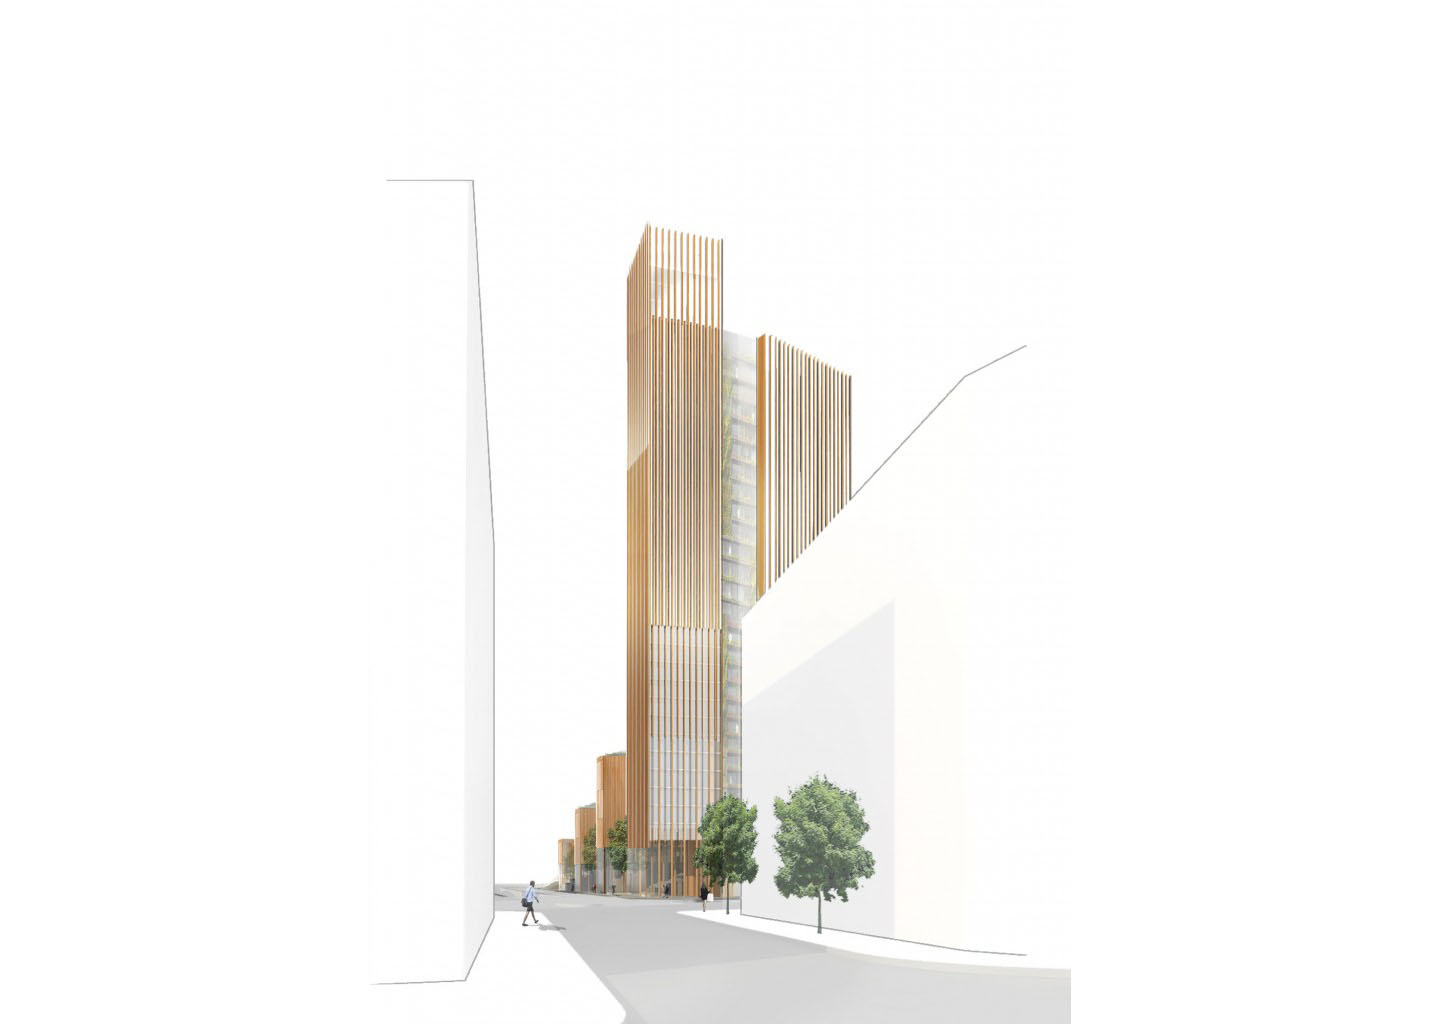 World's tallest wood building proposed in Paris could store 3,700 metric tons of carbon